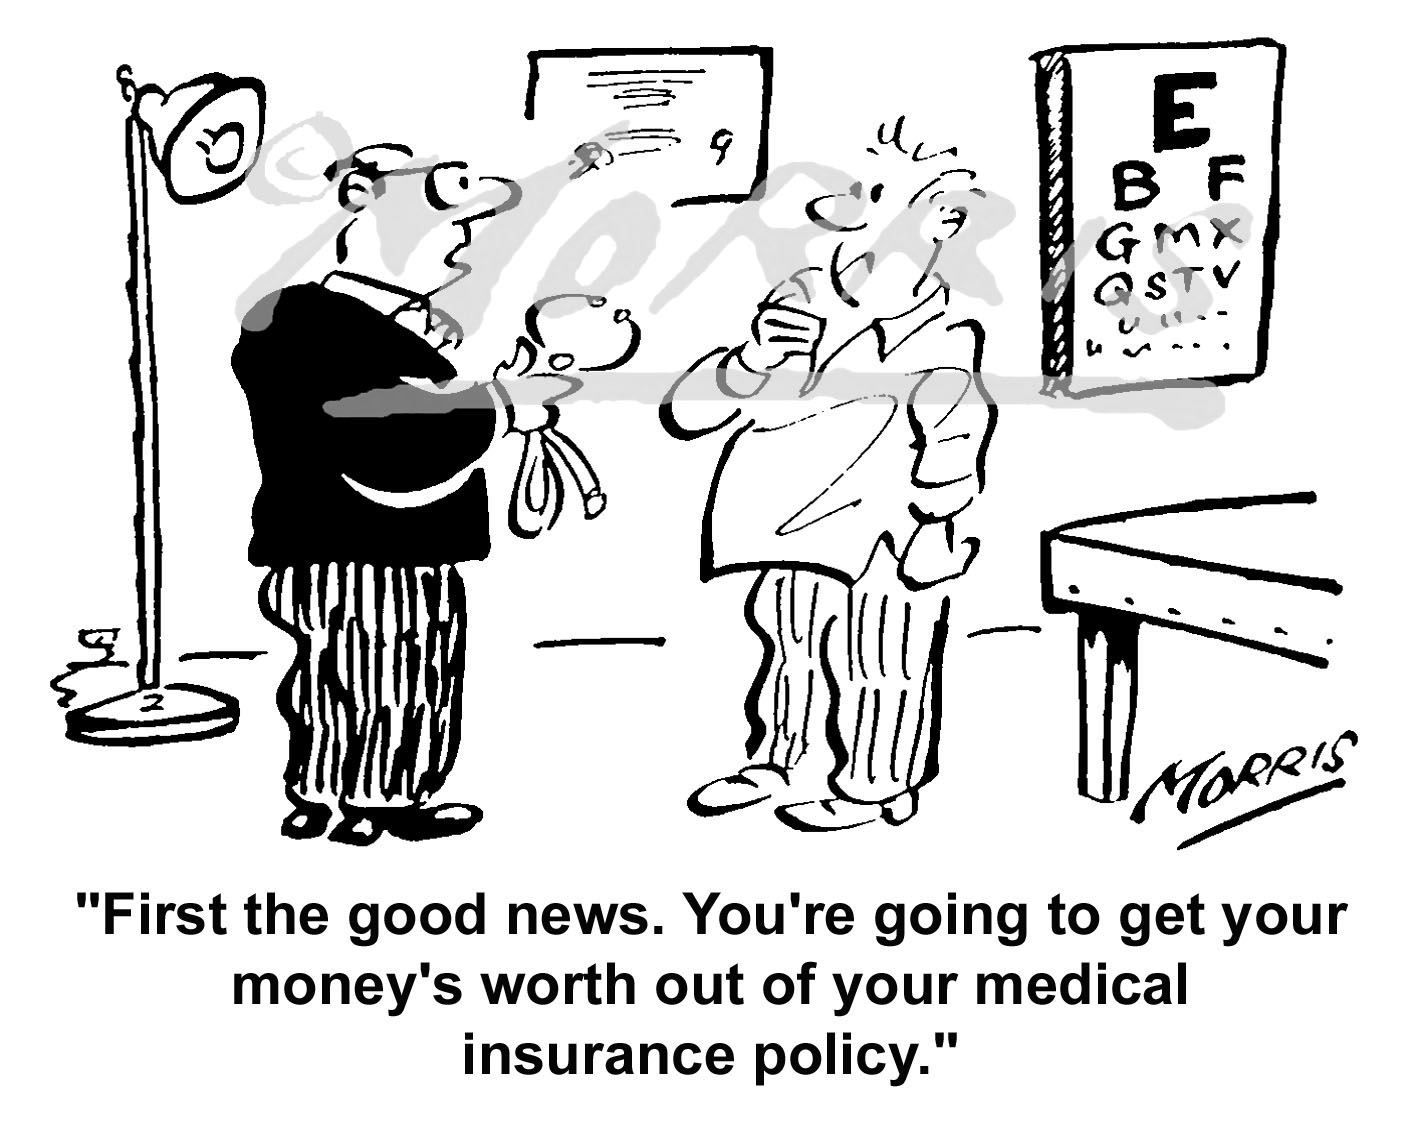 Medical insurance policy cartoon Ref: 4524bw